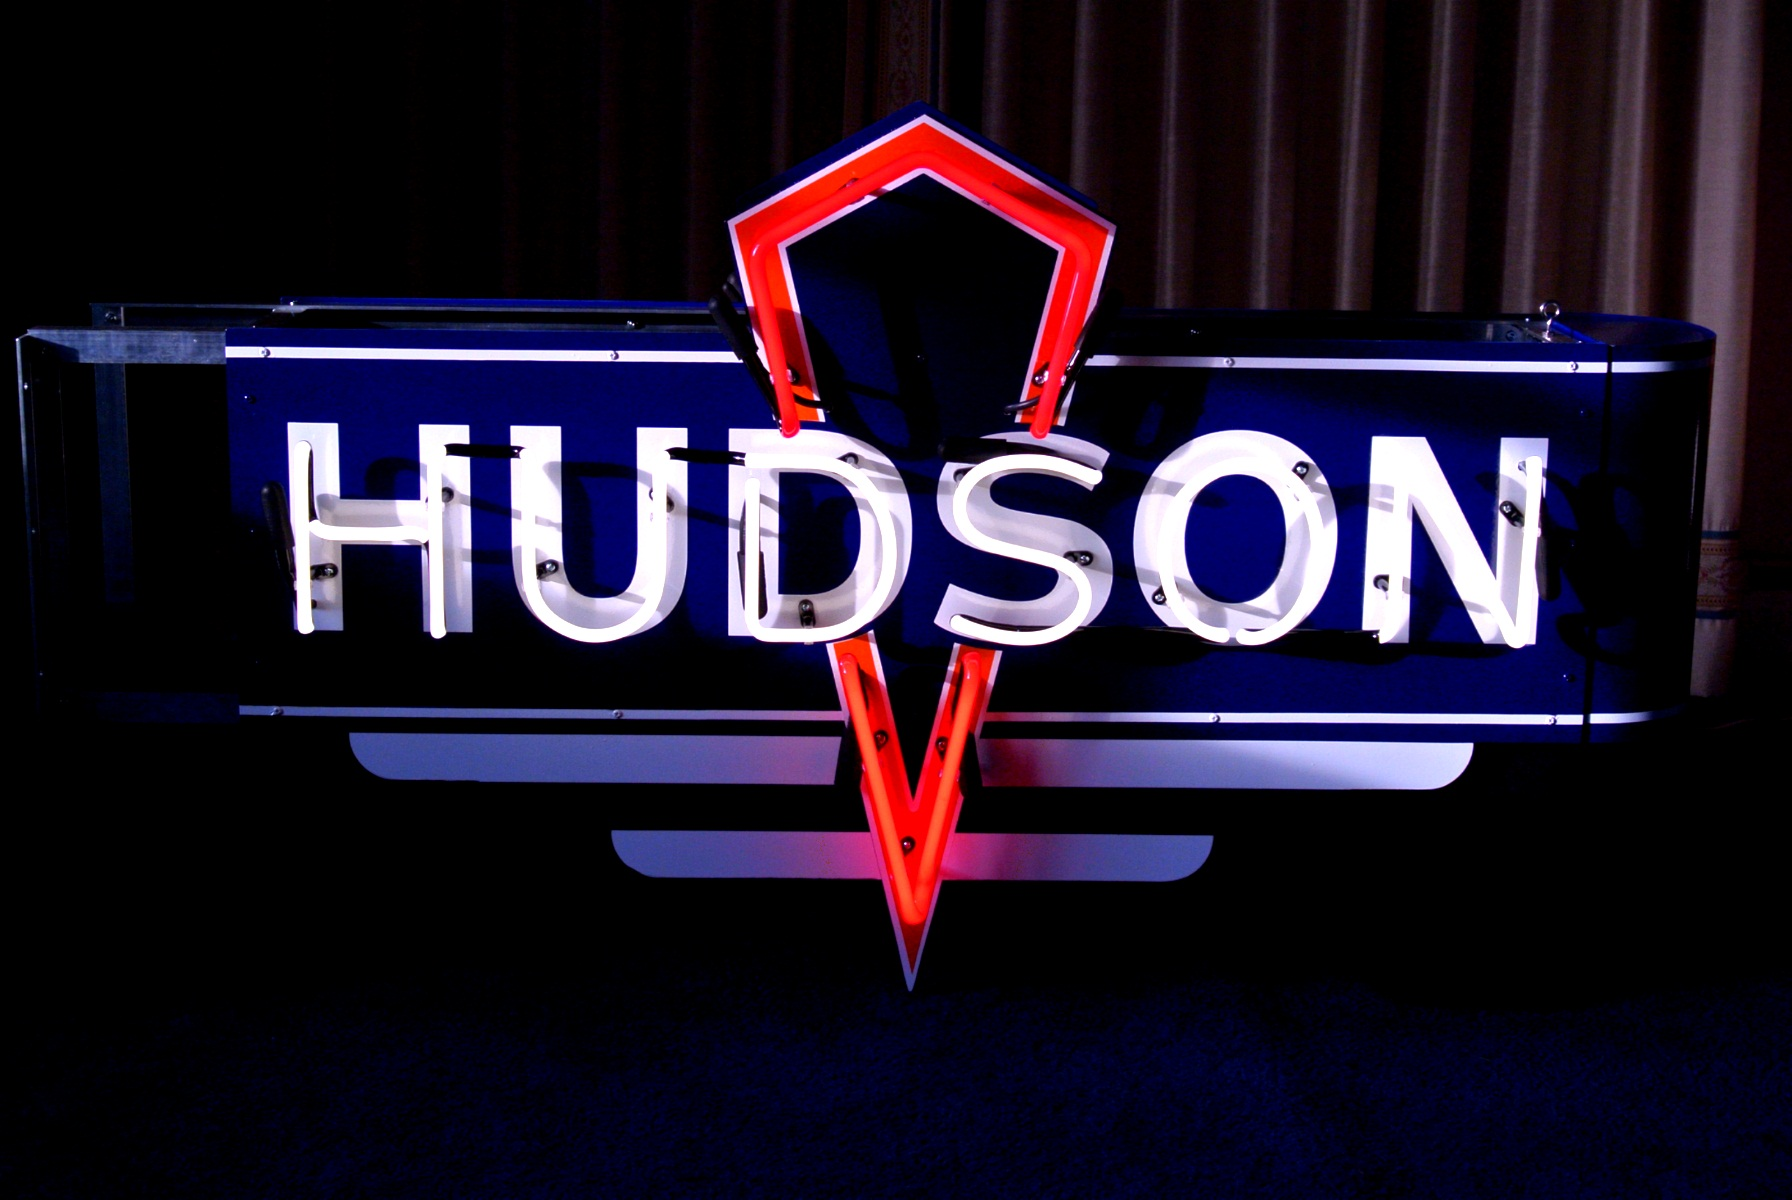 Hudson Neon Dealership Sign - by John Barton - Neon Glass Artist